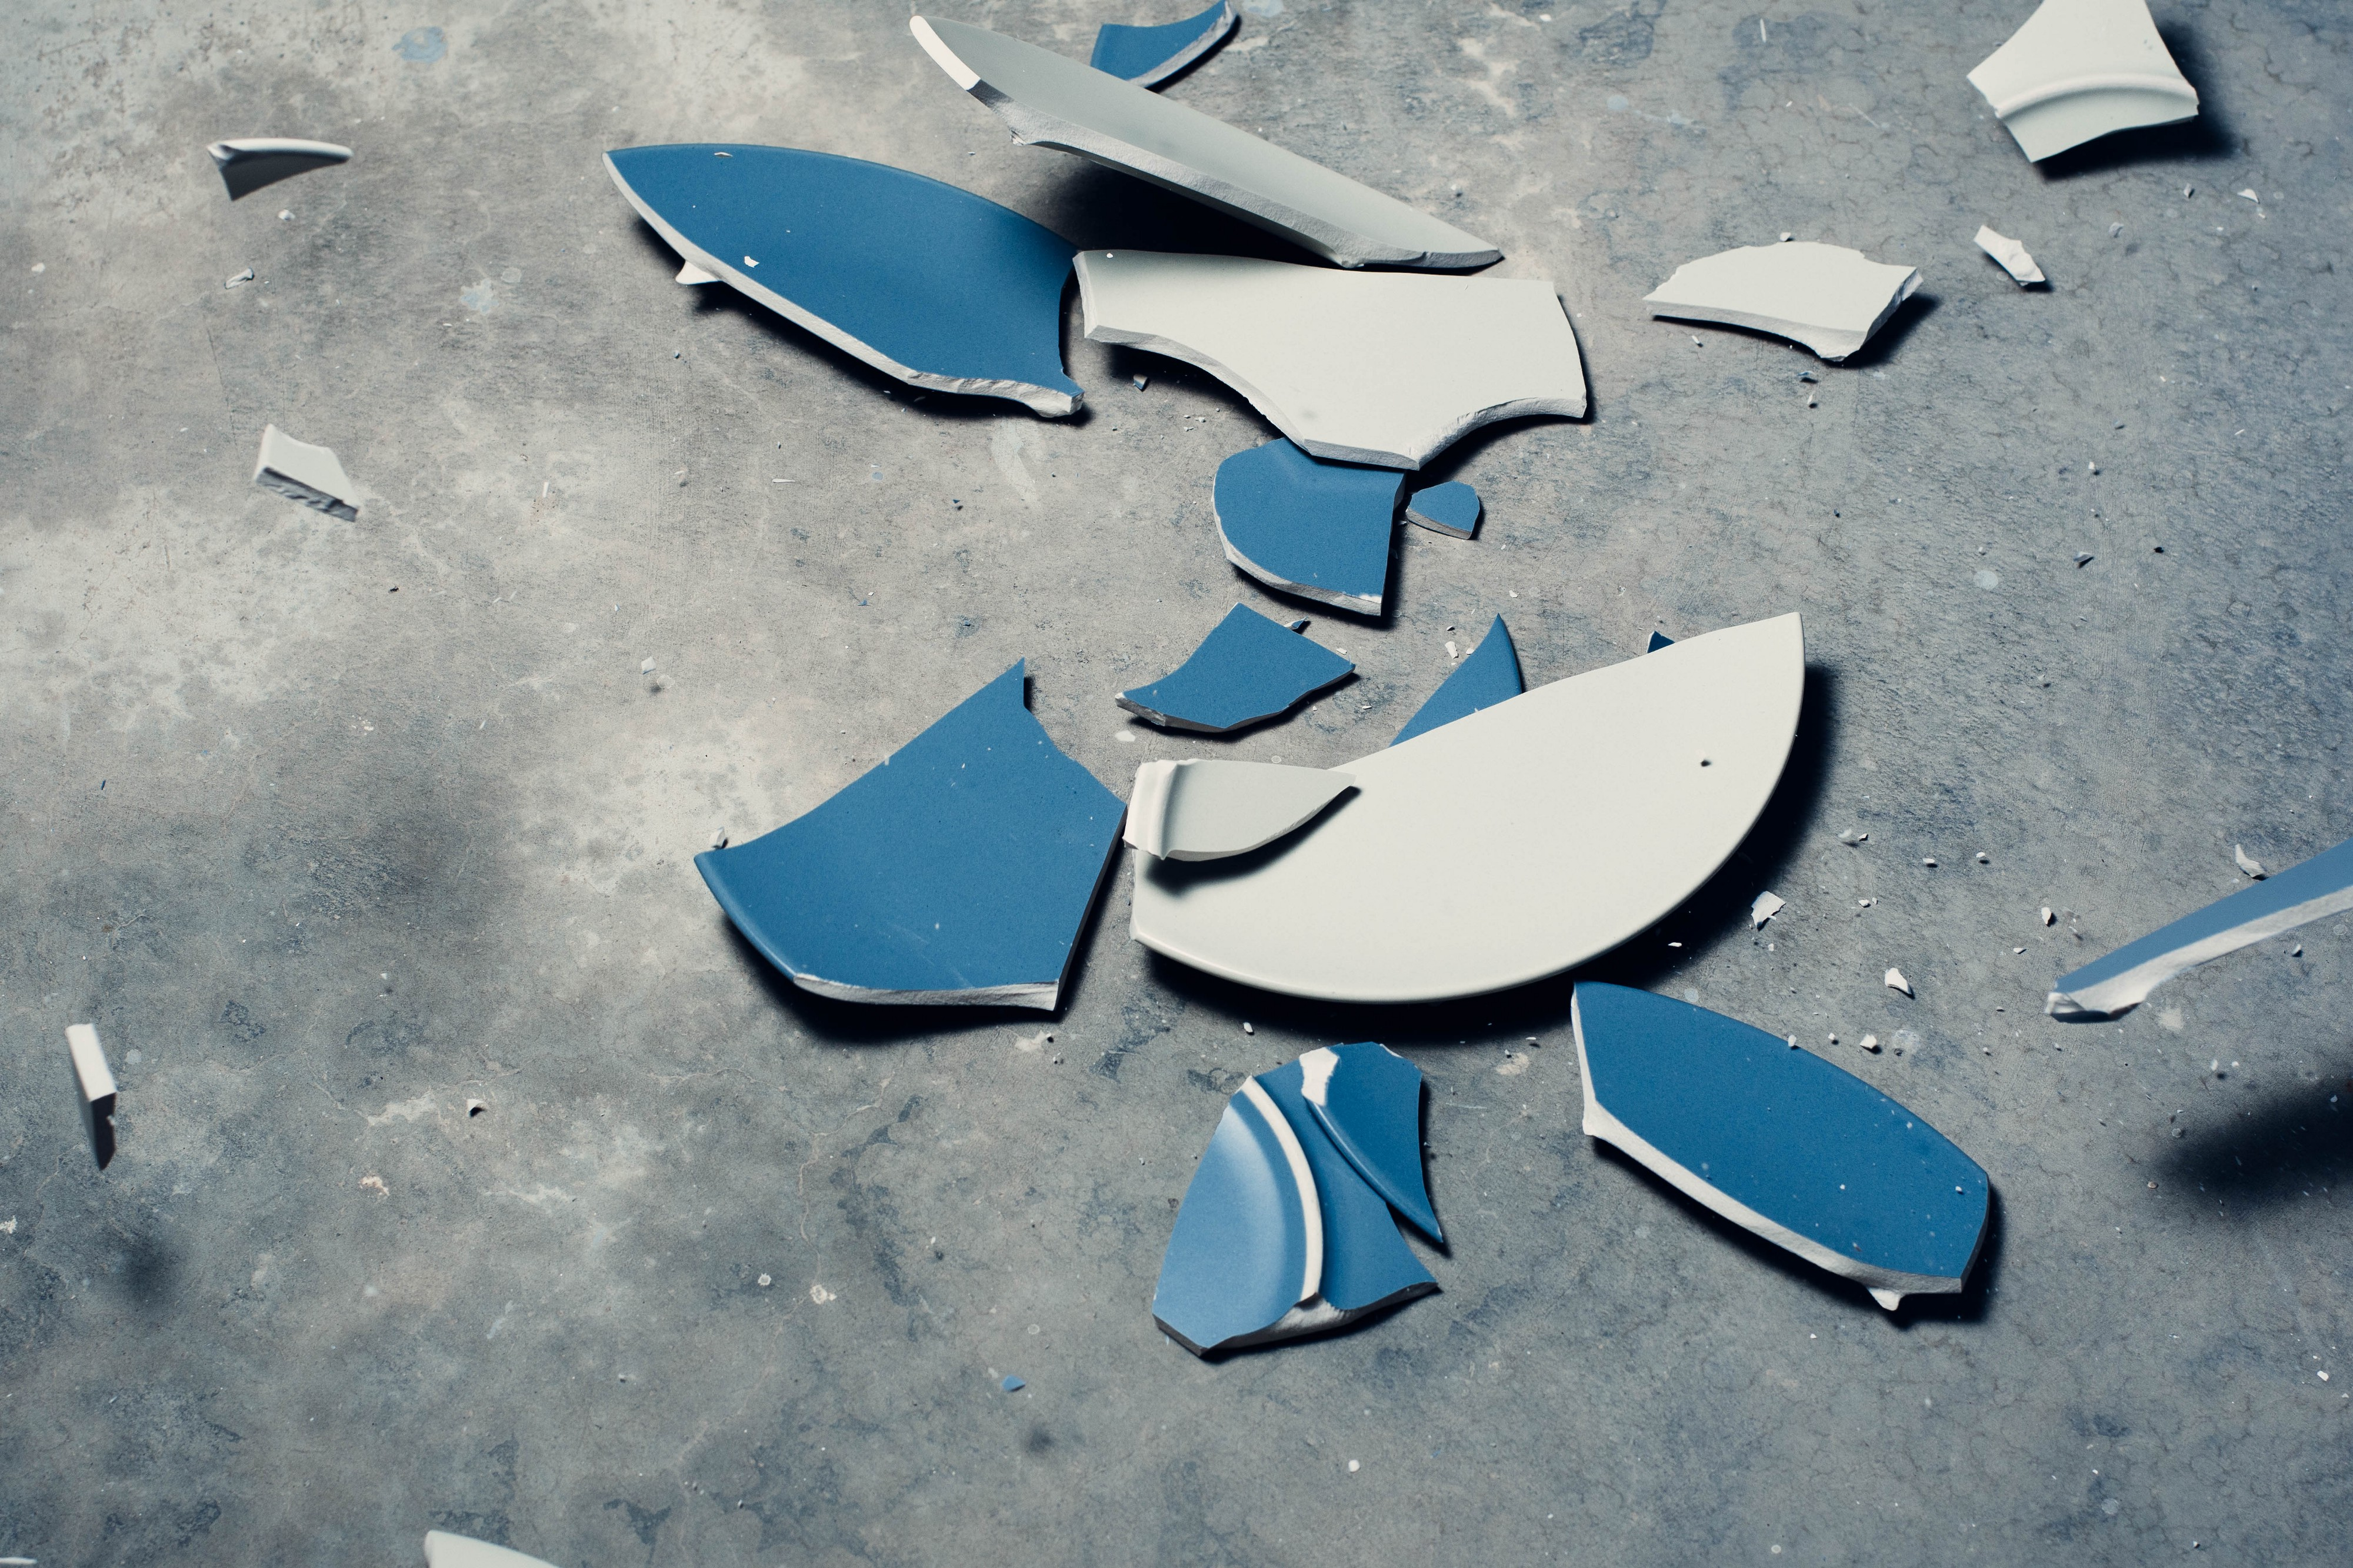 A blue and white plate shattered on a concrete floor.